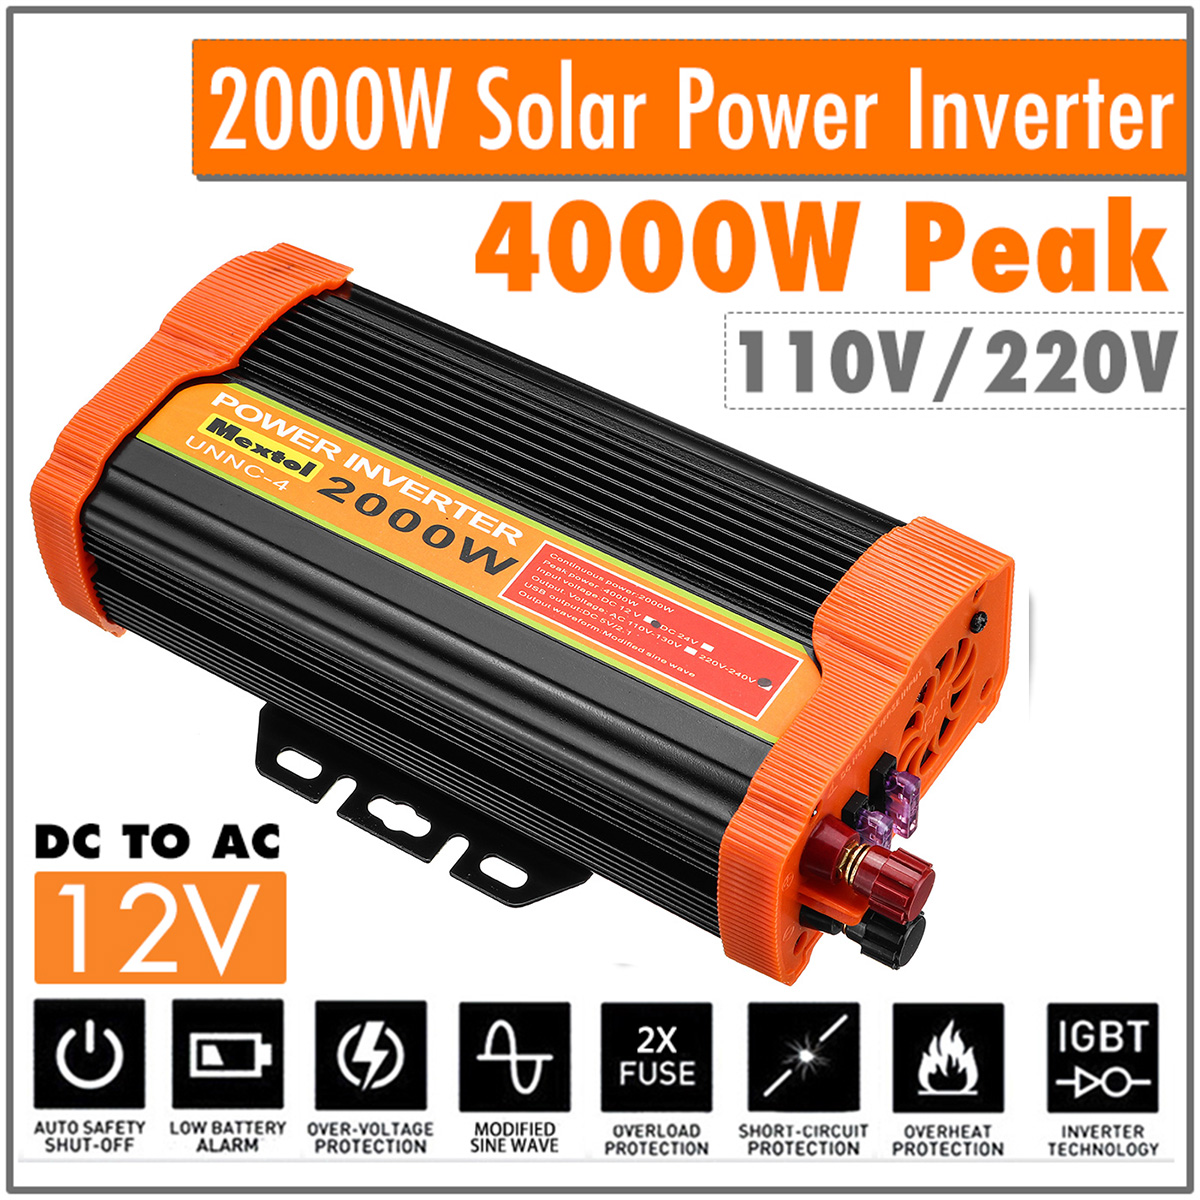 Max 4000 Watts Power <font><b>Inverter</b></font> 12 V to 220 Volt Dual USB Car Adapter Charge Converter Modified Sine Wave USB Transformer <font><b>2000W</b></font> image